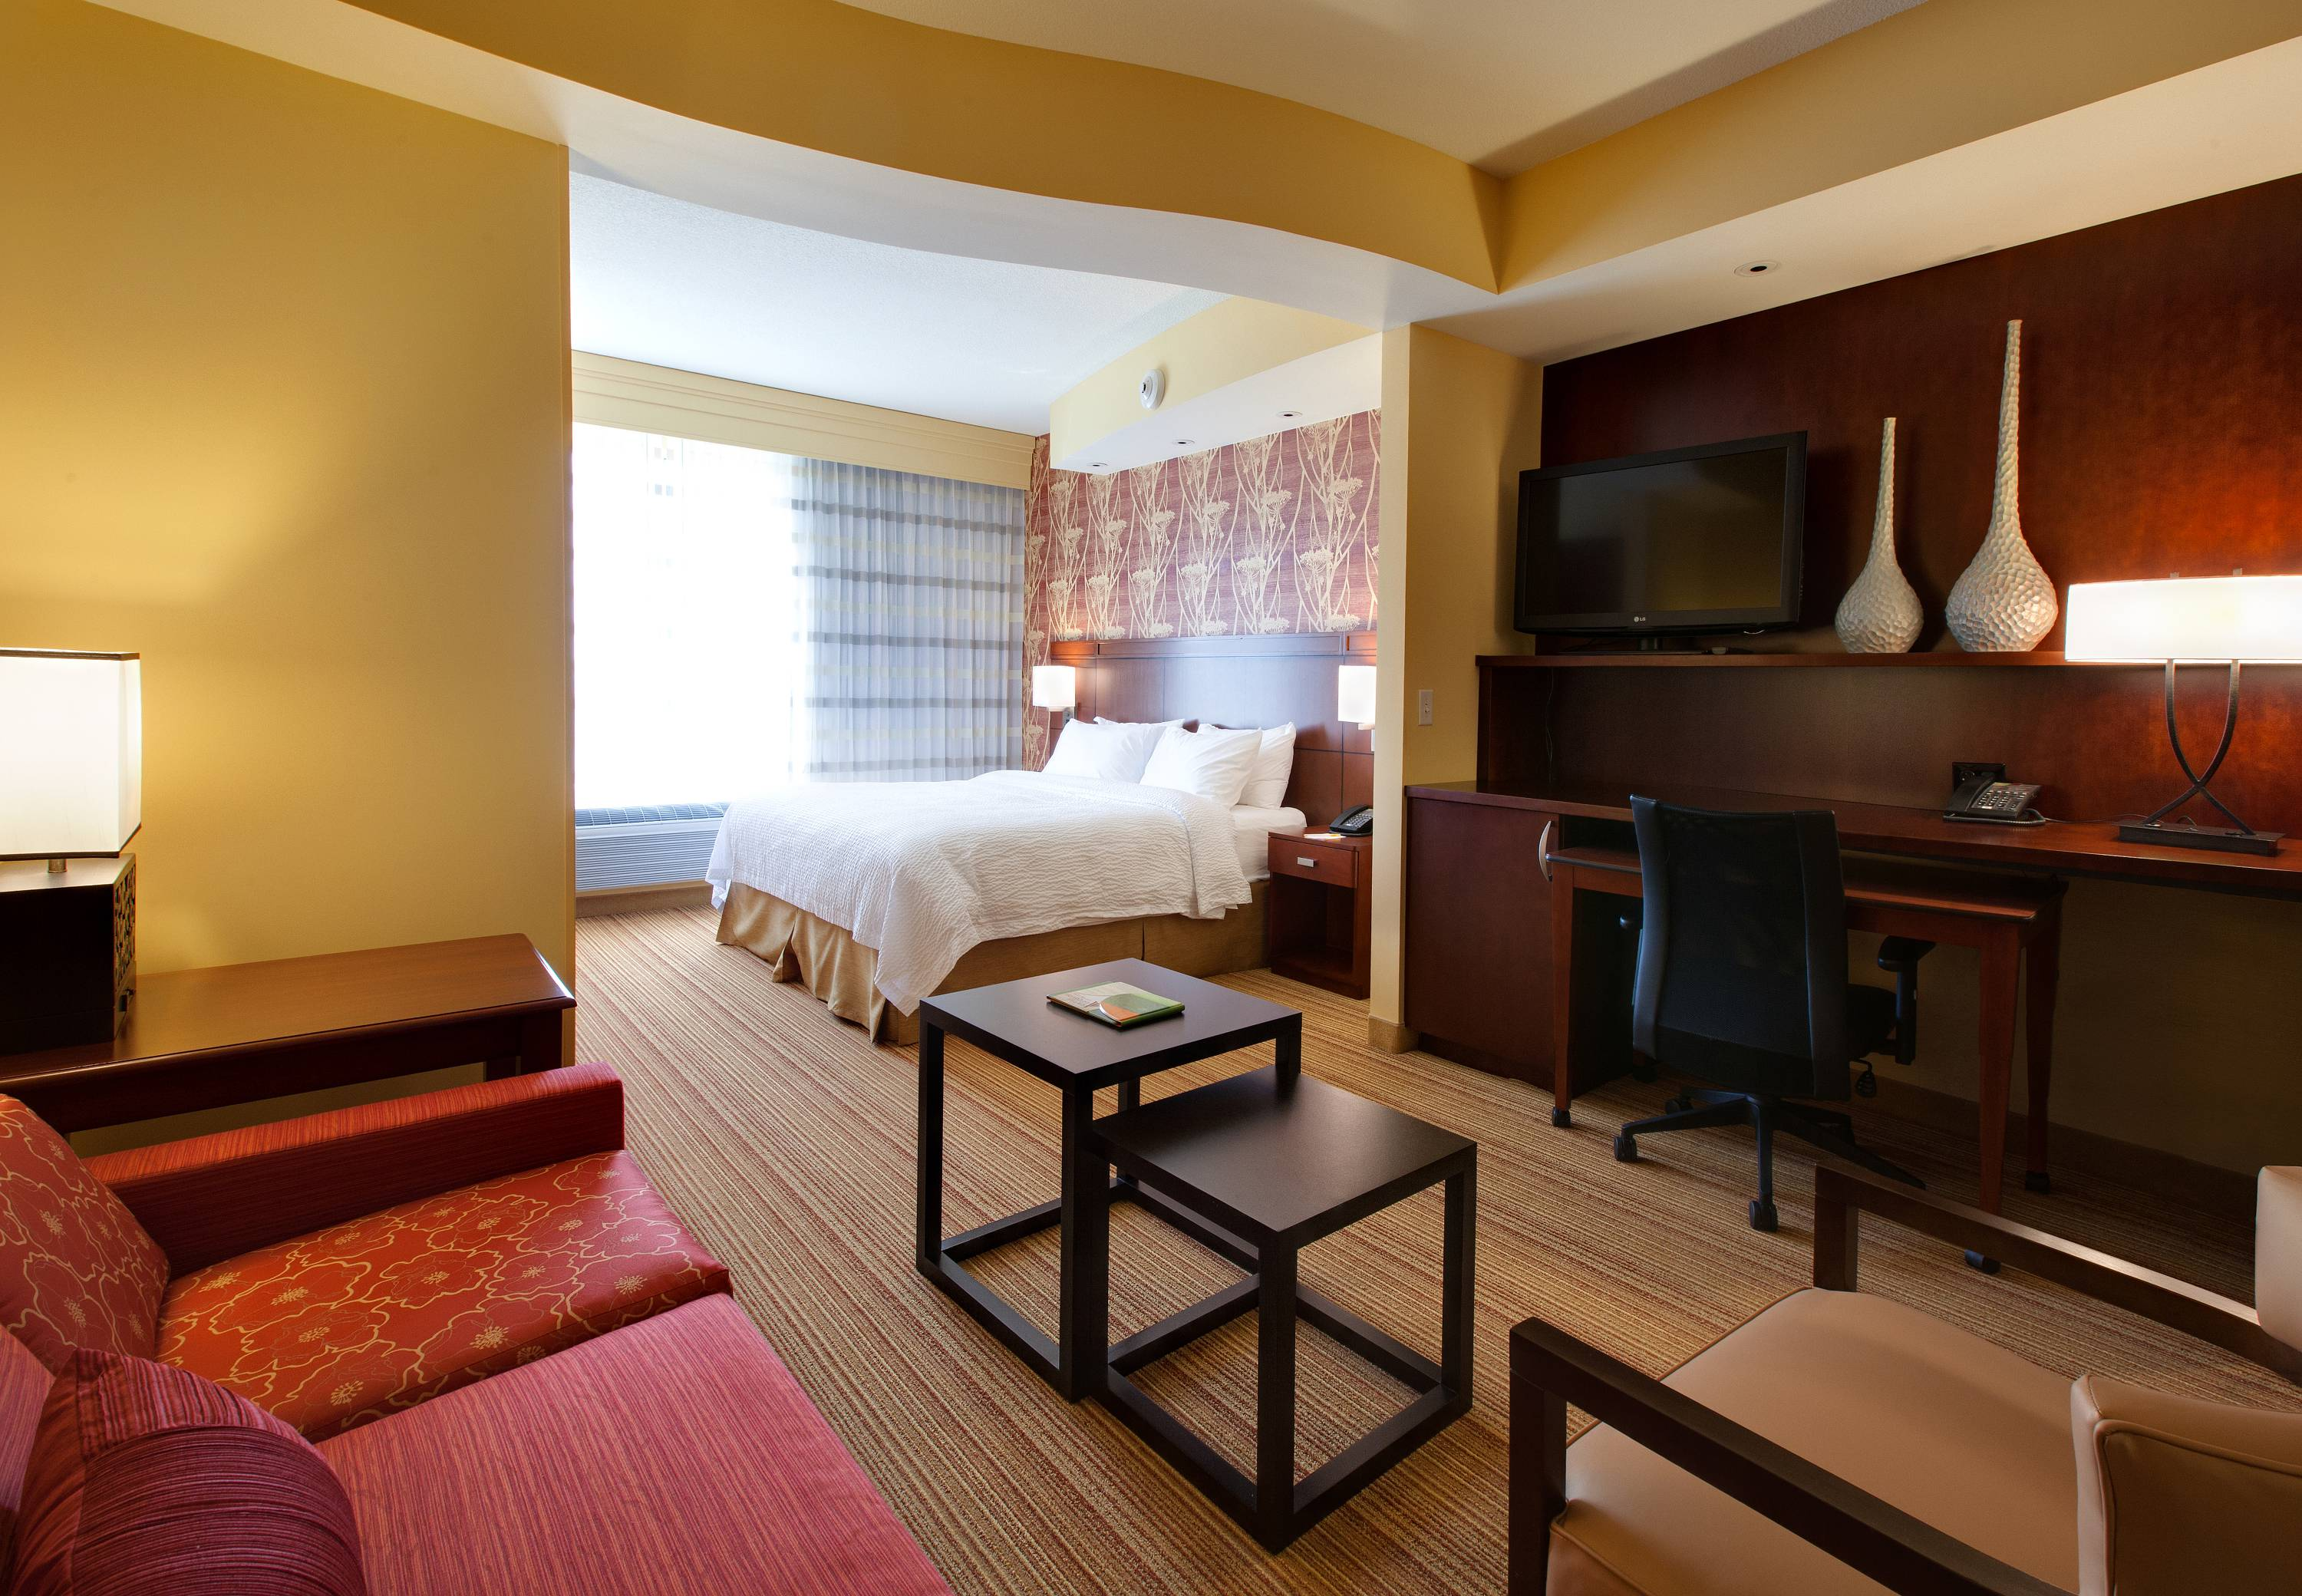 Courtyard by Marriott Kansas City at Briarcliff image 3